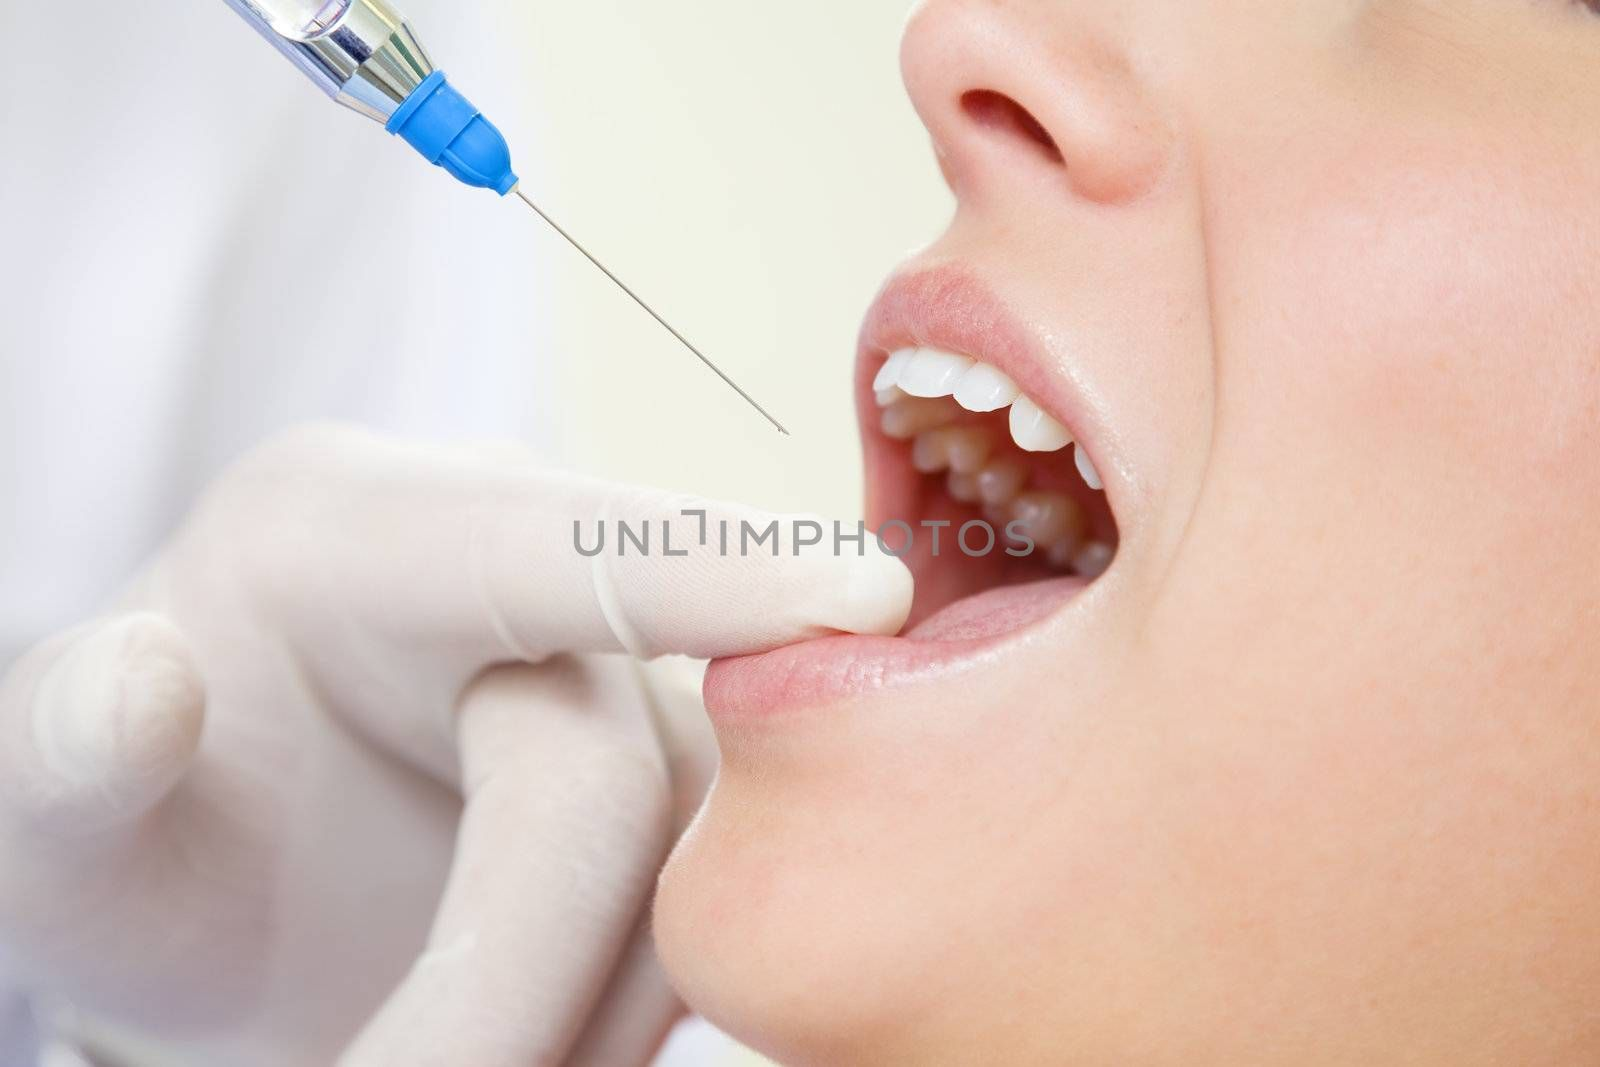 dentist holding a syringe and anesthetizing his patient